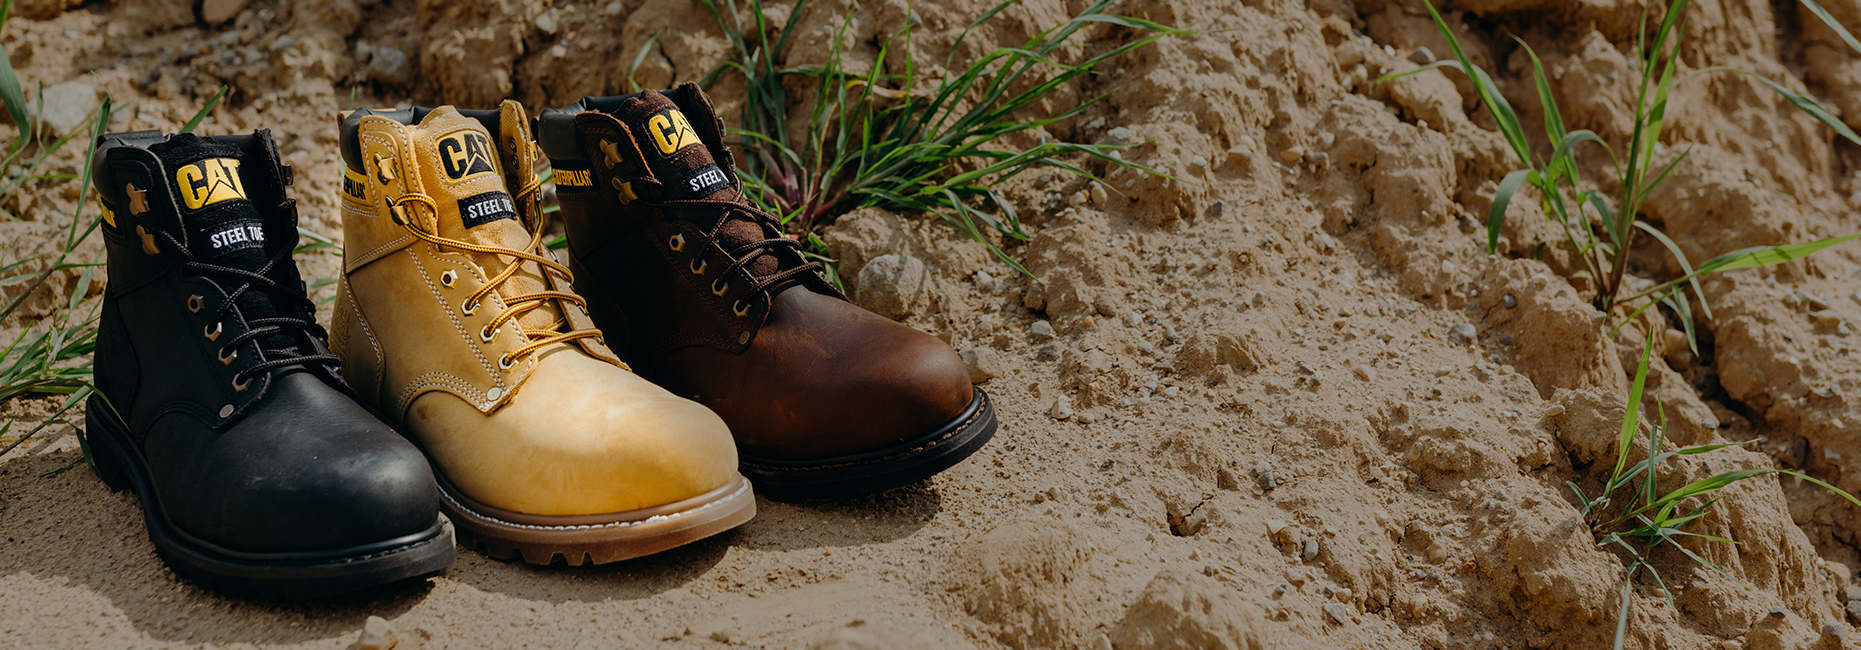 CAT Second Shift Boots sitting in the sand